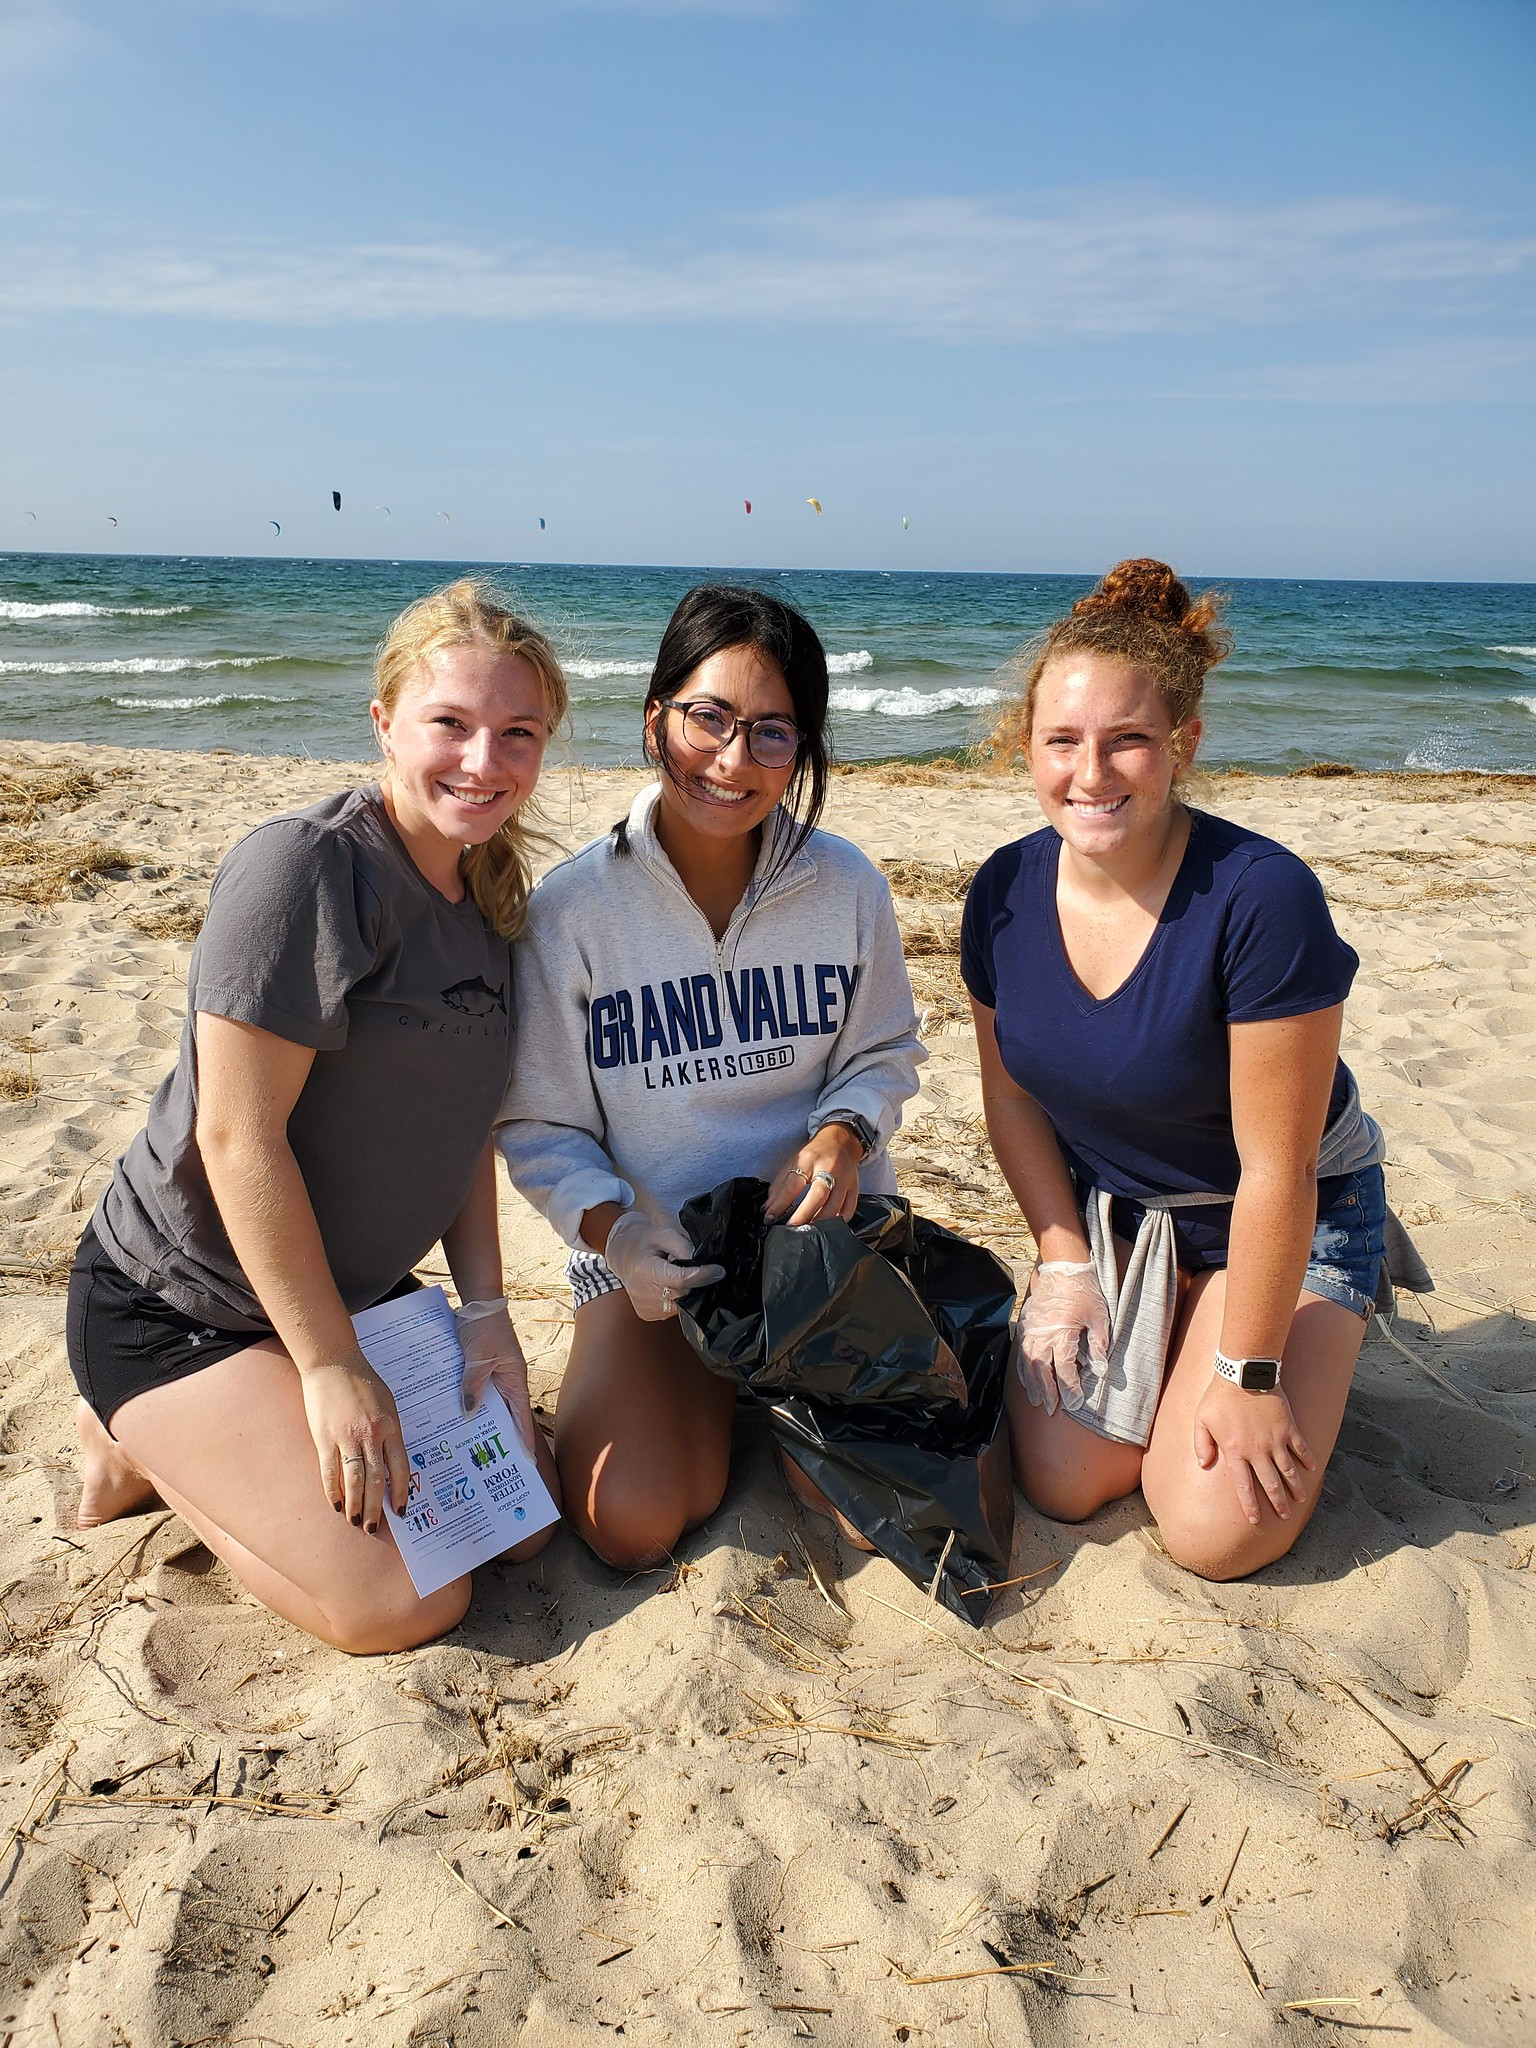 Three volunteers in sand in front of water